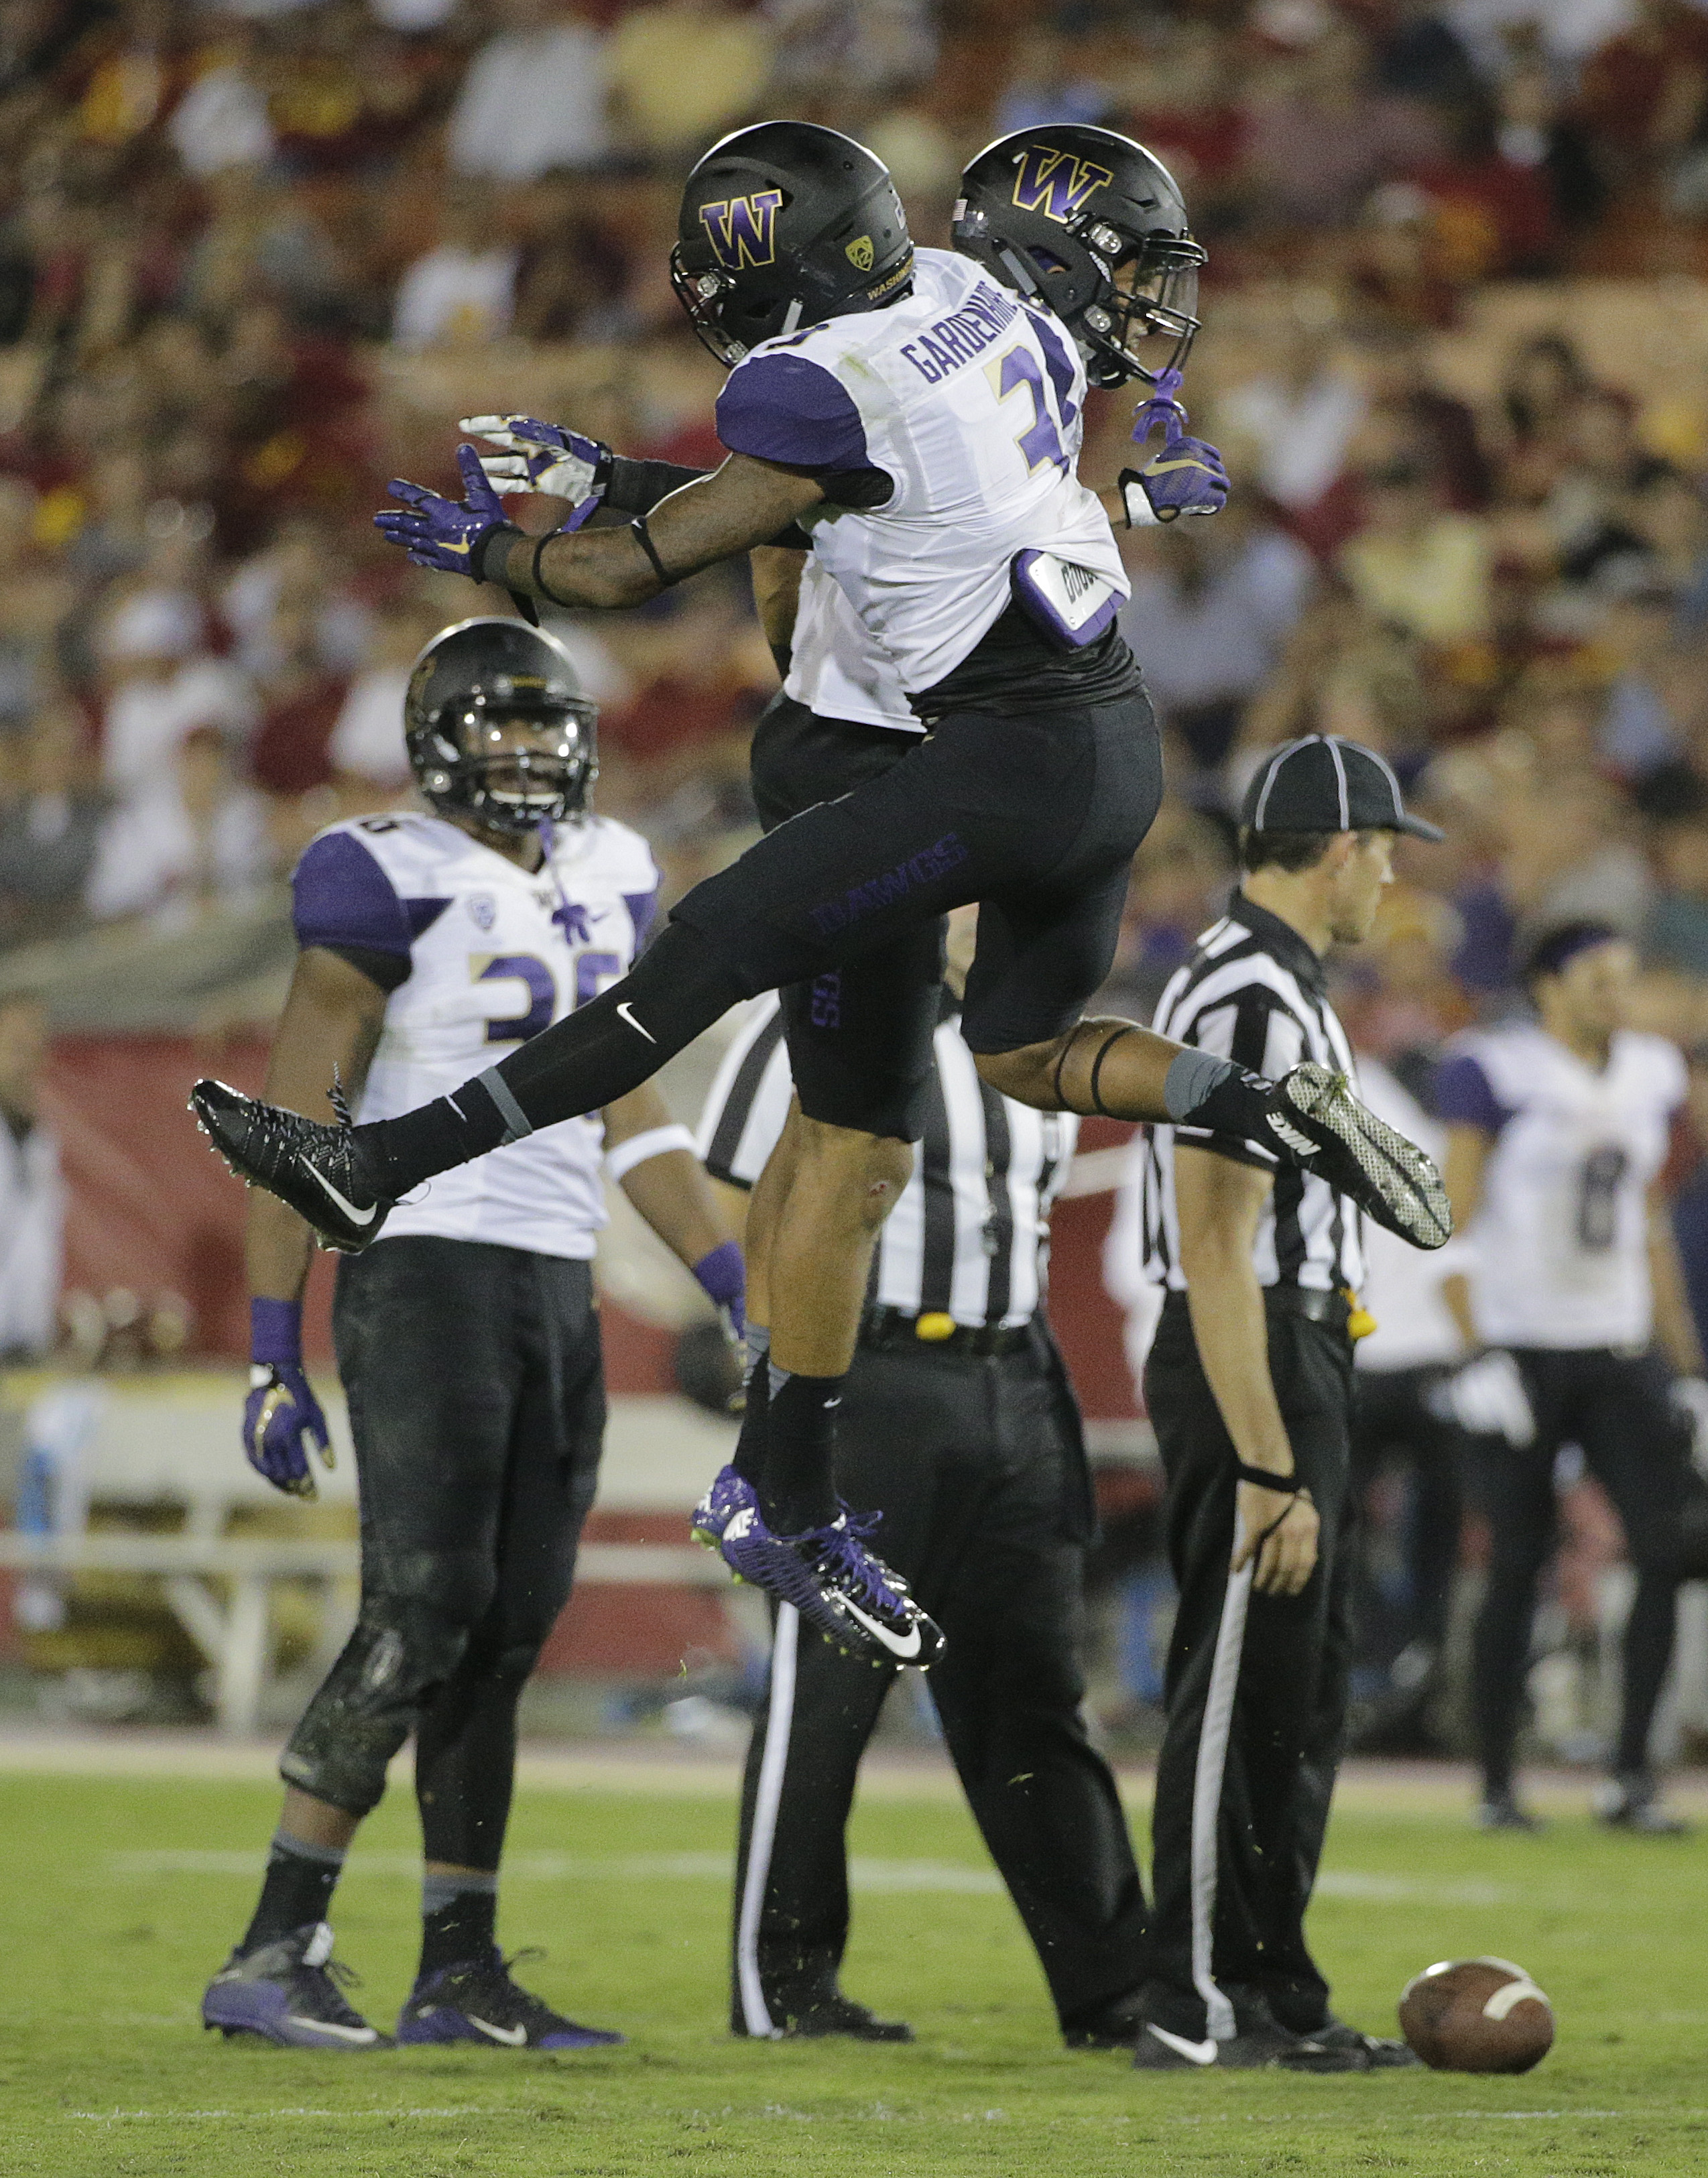 Washington's Darren Gardenhire, front, and Sidney Jones celebrate after their teammate recovered a fumble during the second half of an NCAA college football game against Southern California , Thursday, Oct. 8, 2015, in Los Angeles. Washington won 17-12. (